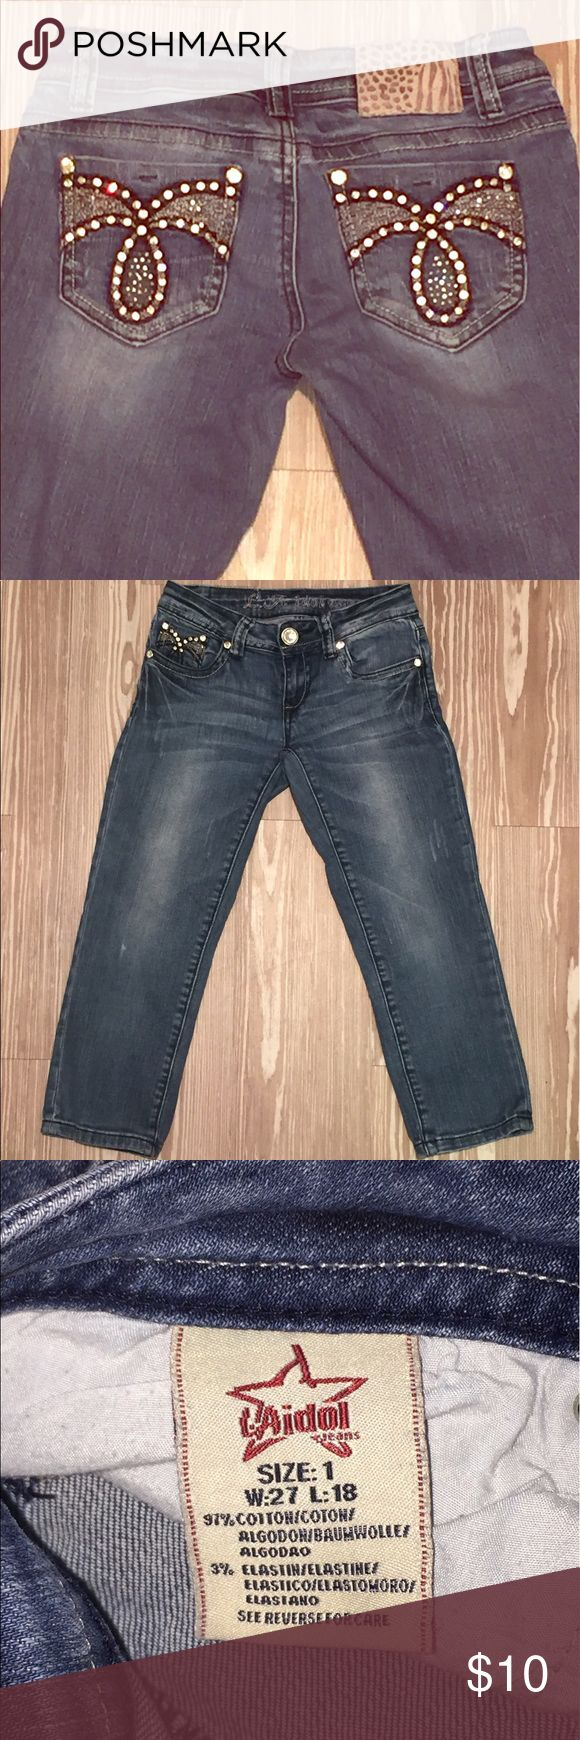 LA Idol Bling Skinny Capri Fair condition LA Idol Capri. Jeans are in great shape, the LA Idol tag on the rear is missing. They are still really cute and the rhinestones are still in tact. Style is dark wash distressed. LA Idol Jeans Skinny